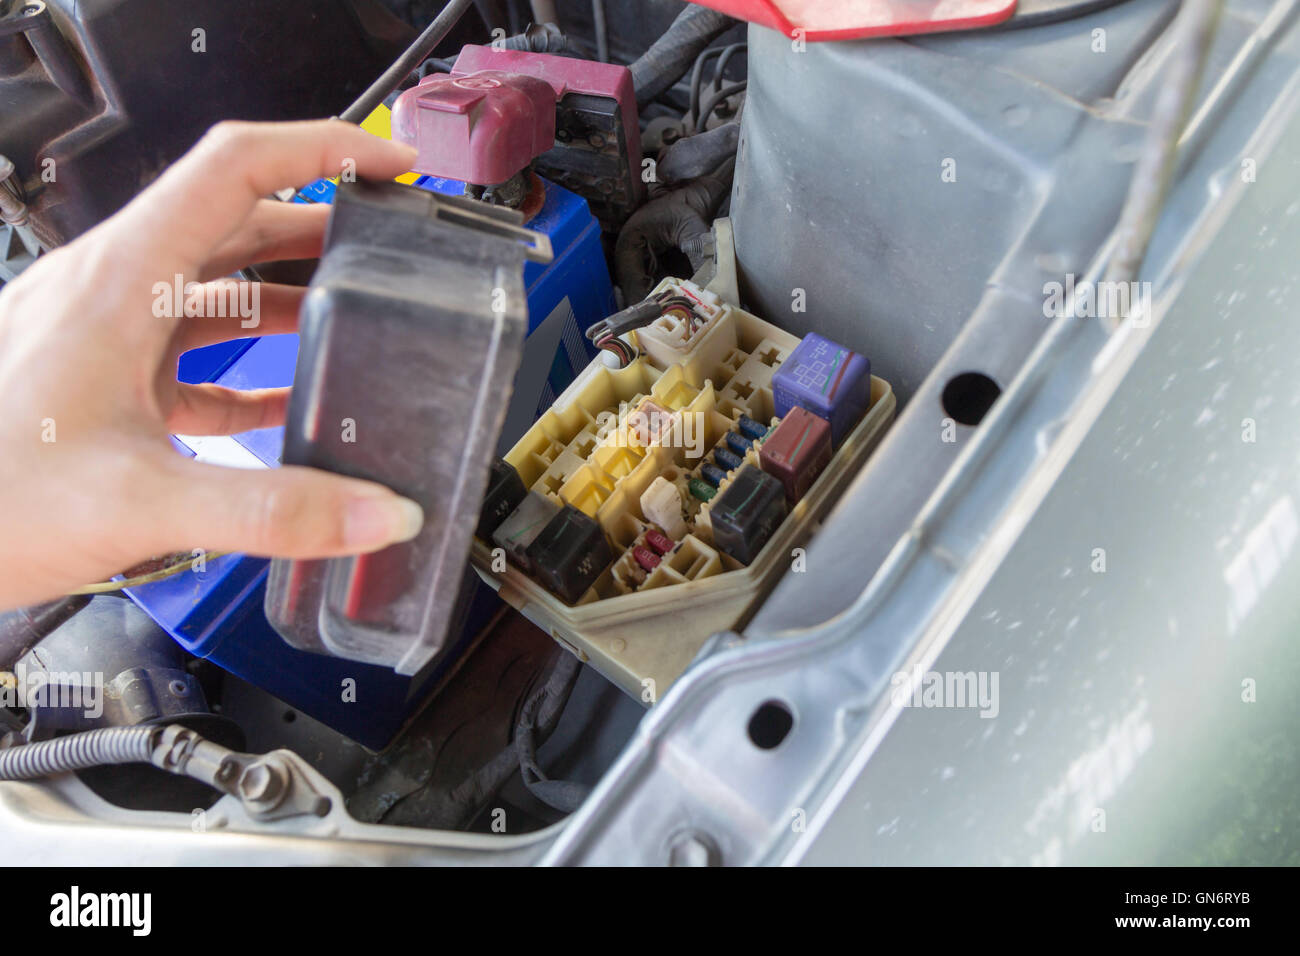 Old Fuses Fuse Box Stock Photos Images Used Car The Man Opening Of Image